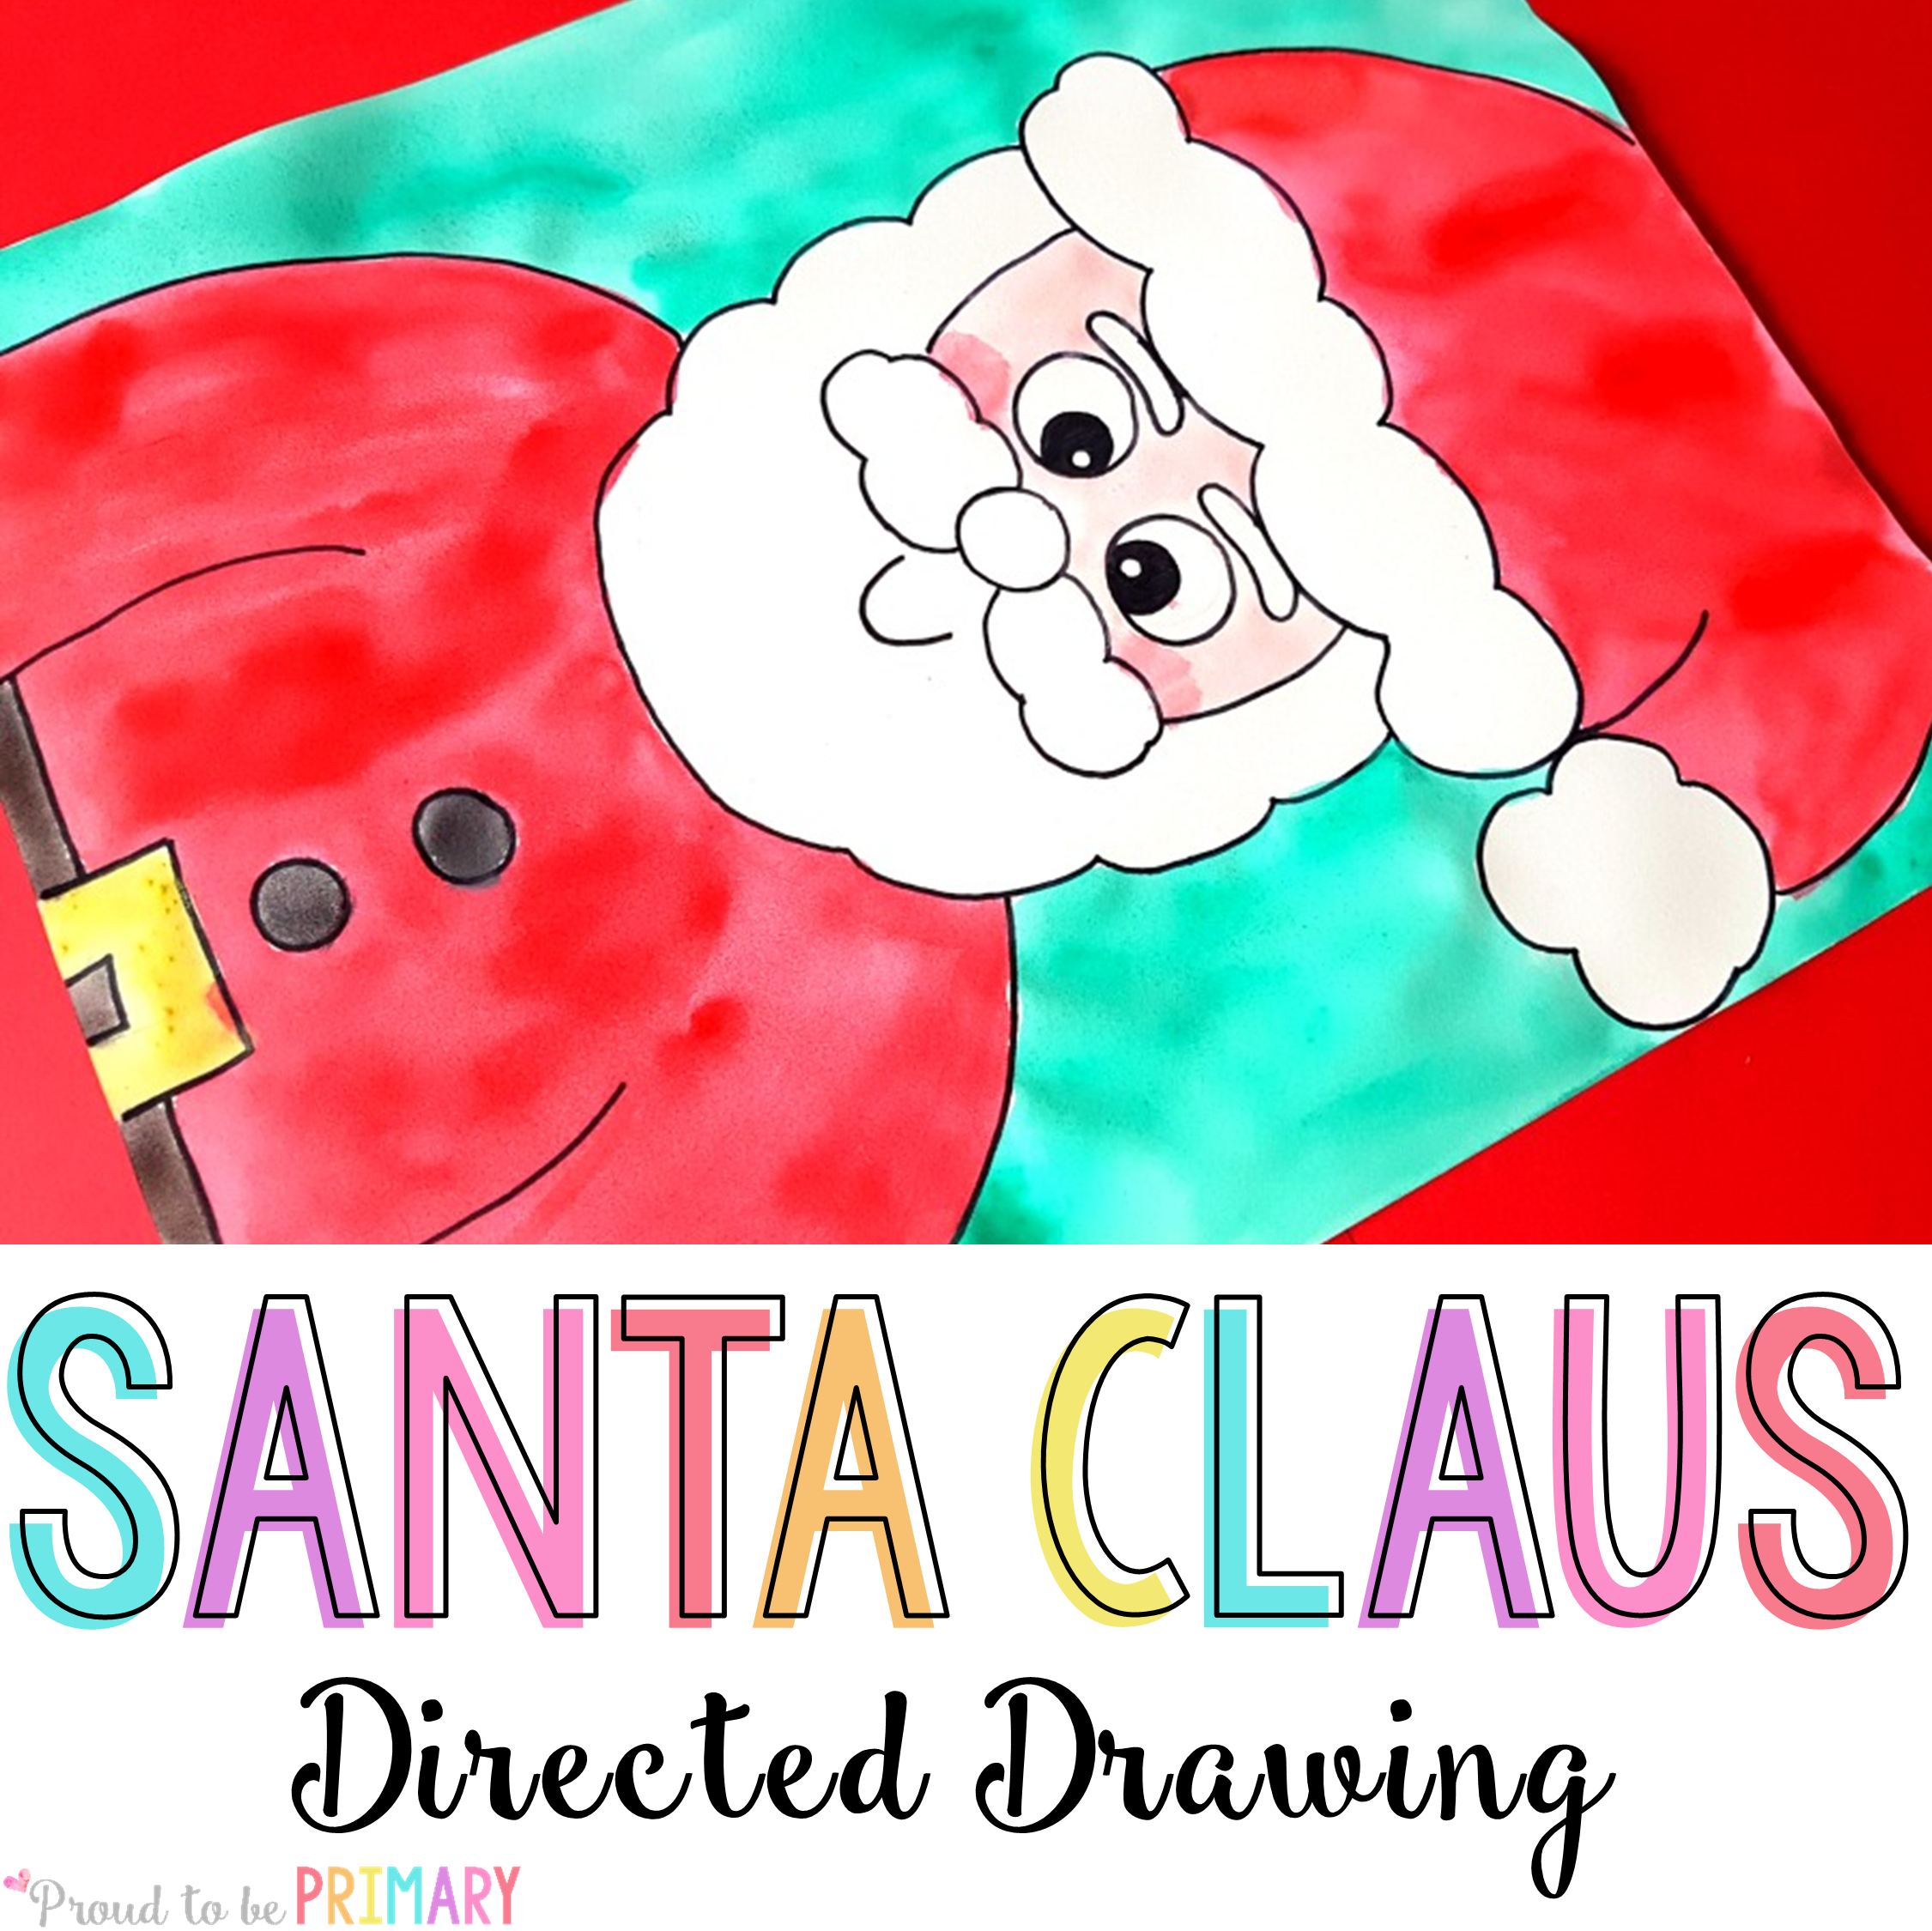 directed drawing resources - Santa Claus Santa